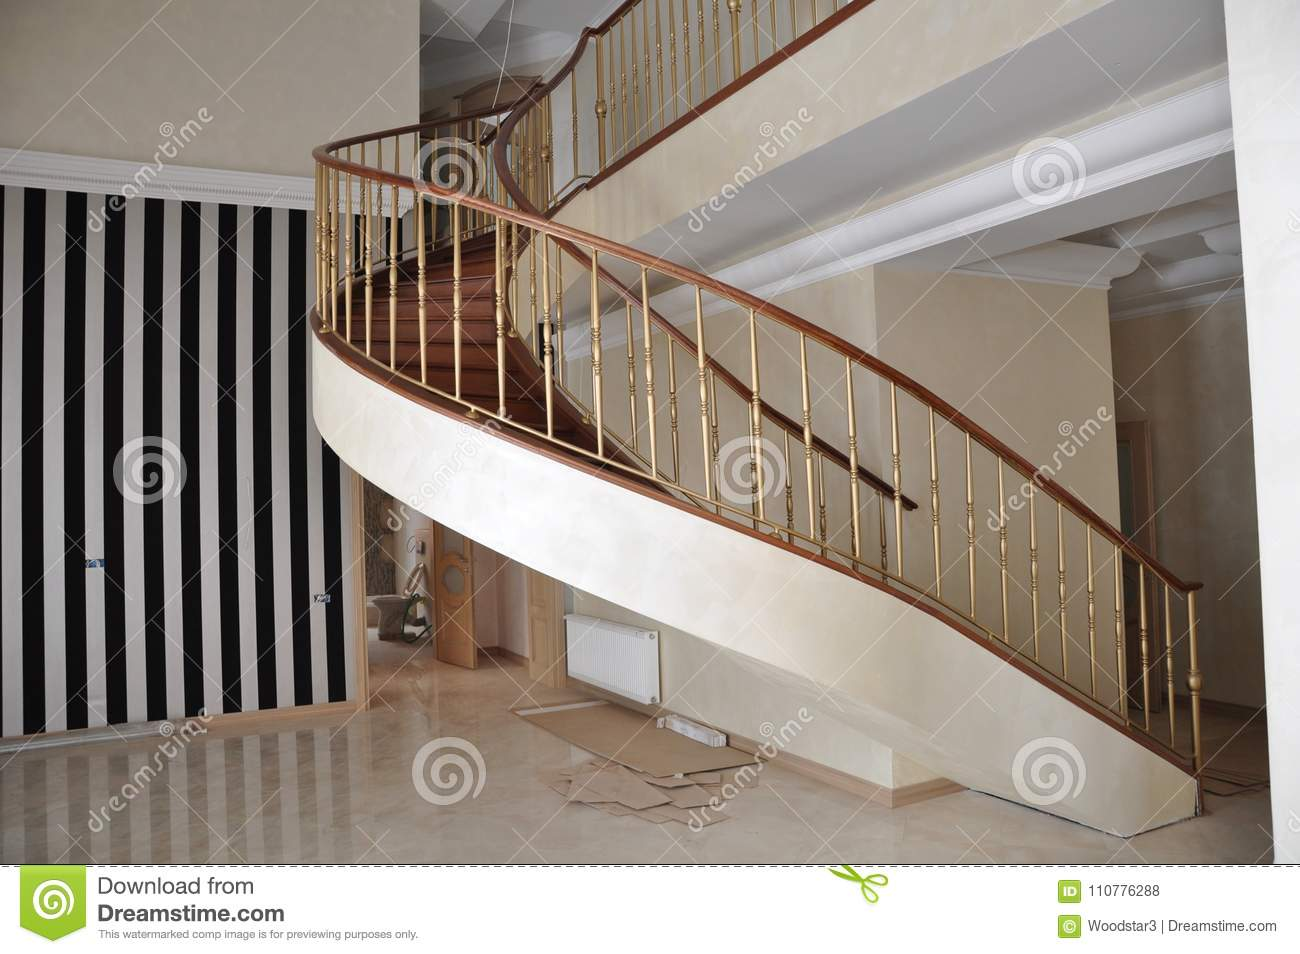 An original staircase with a left turn.